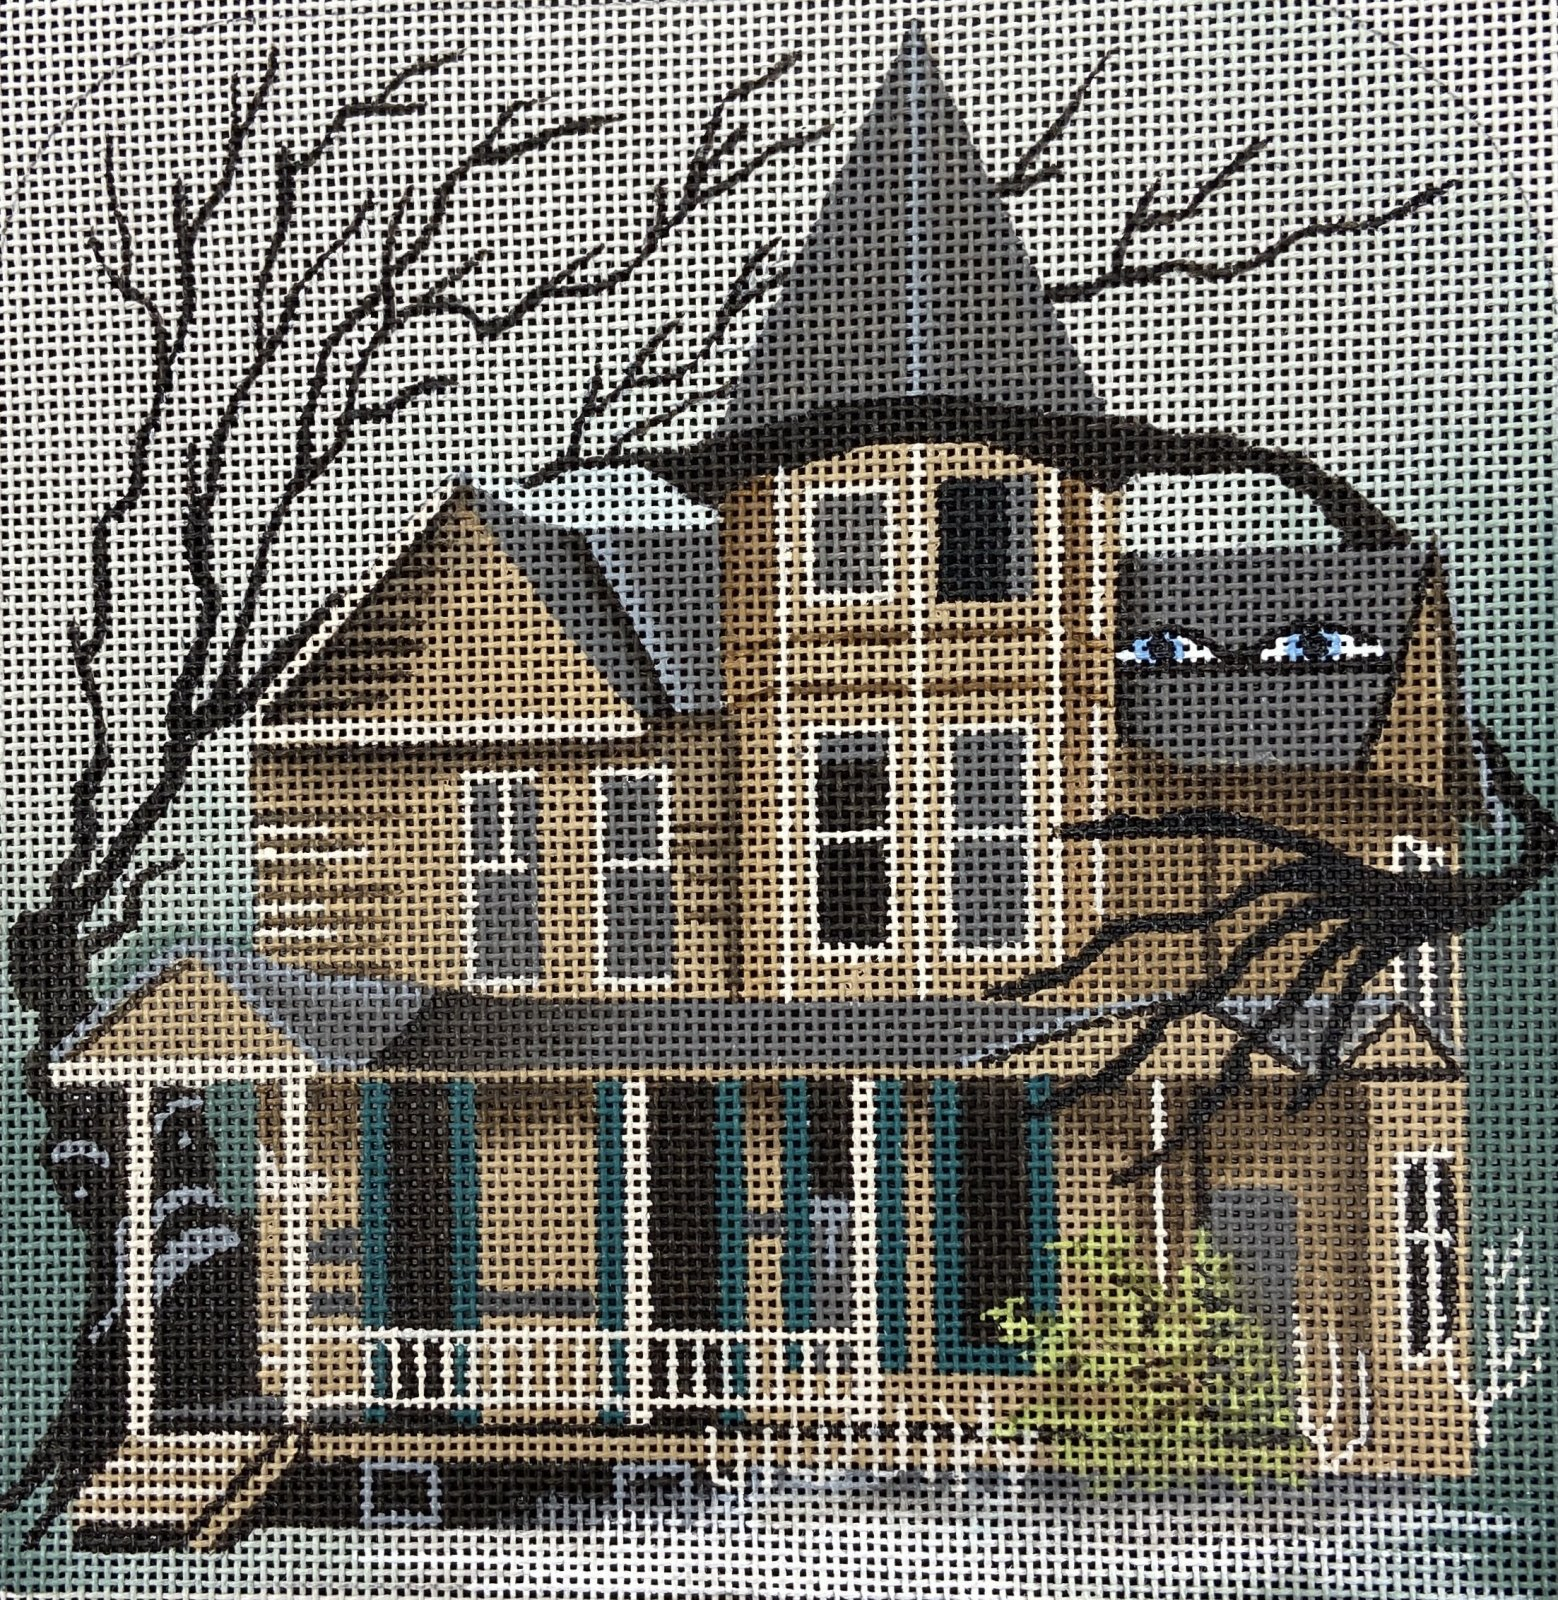 LD5215 Wailing Woods Haunted Hill with Stitch Guide Leigh Designs